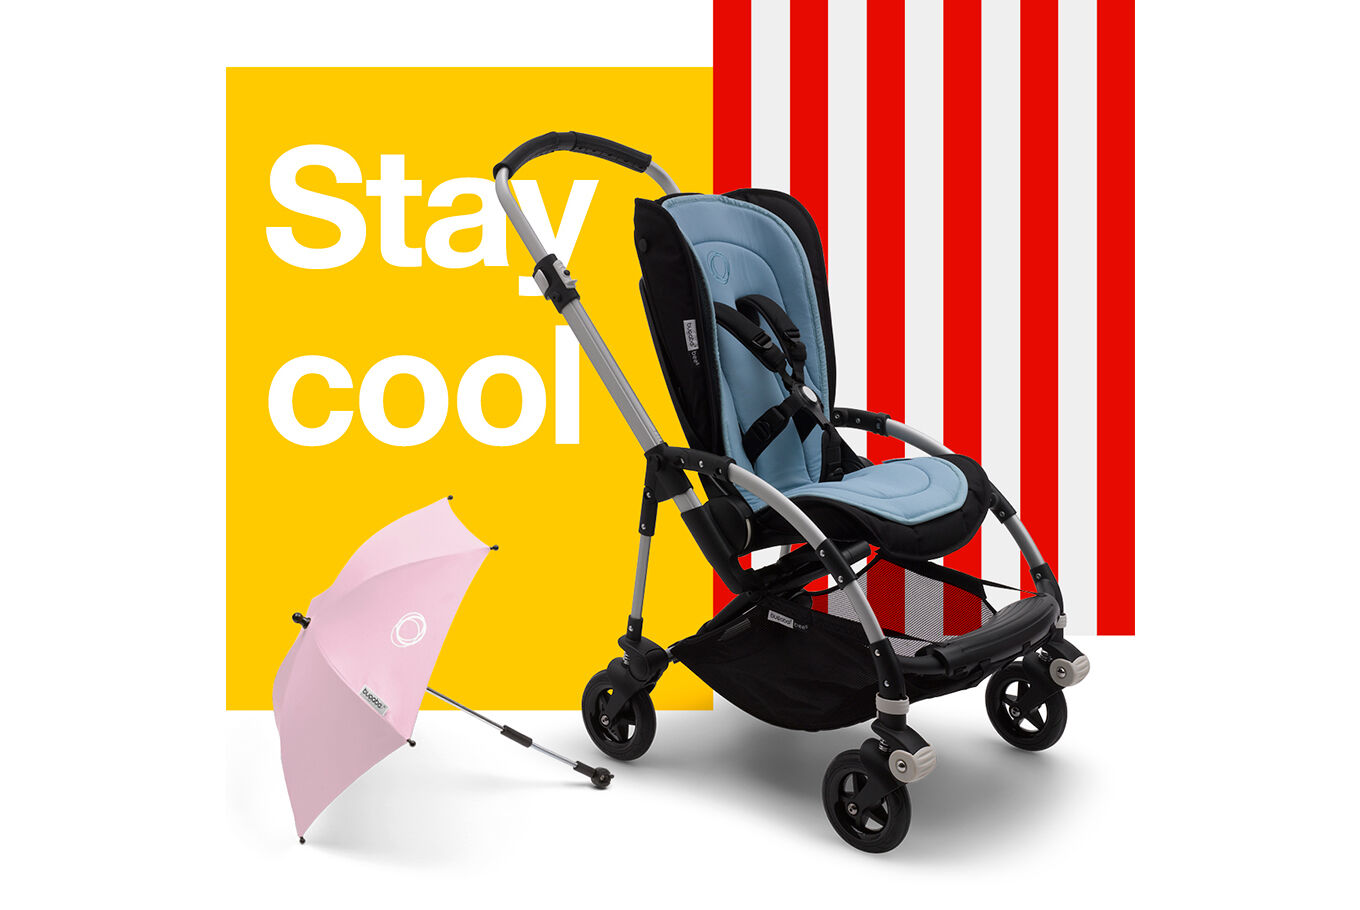 Stroller accessories for summer | Shop now | Bugaboo.com | Bugaboo DK